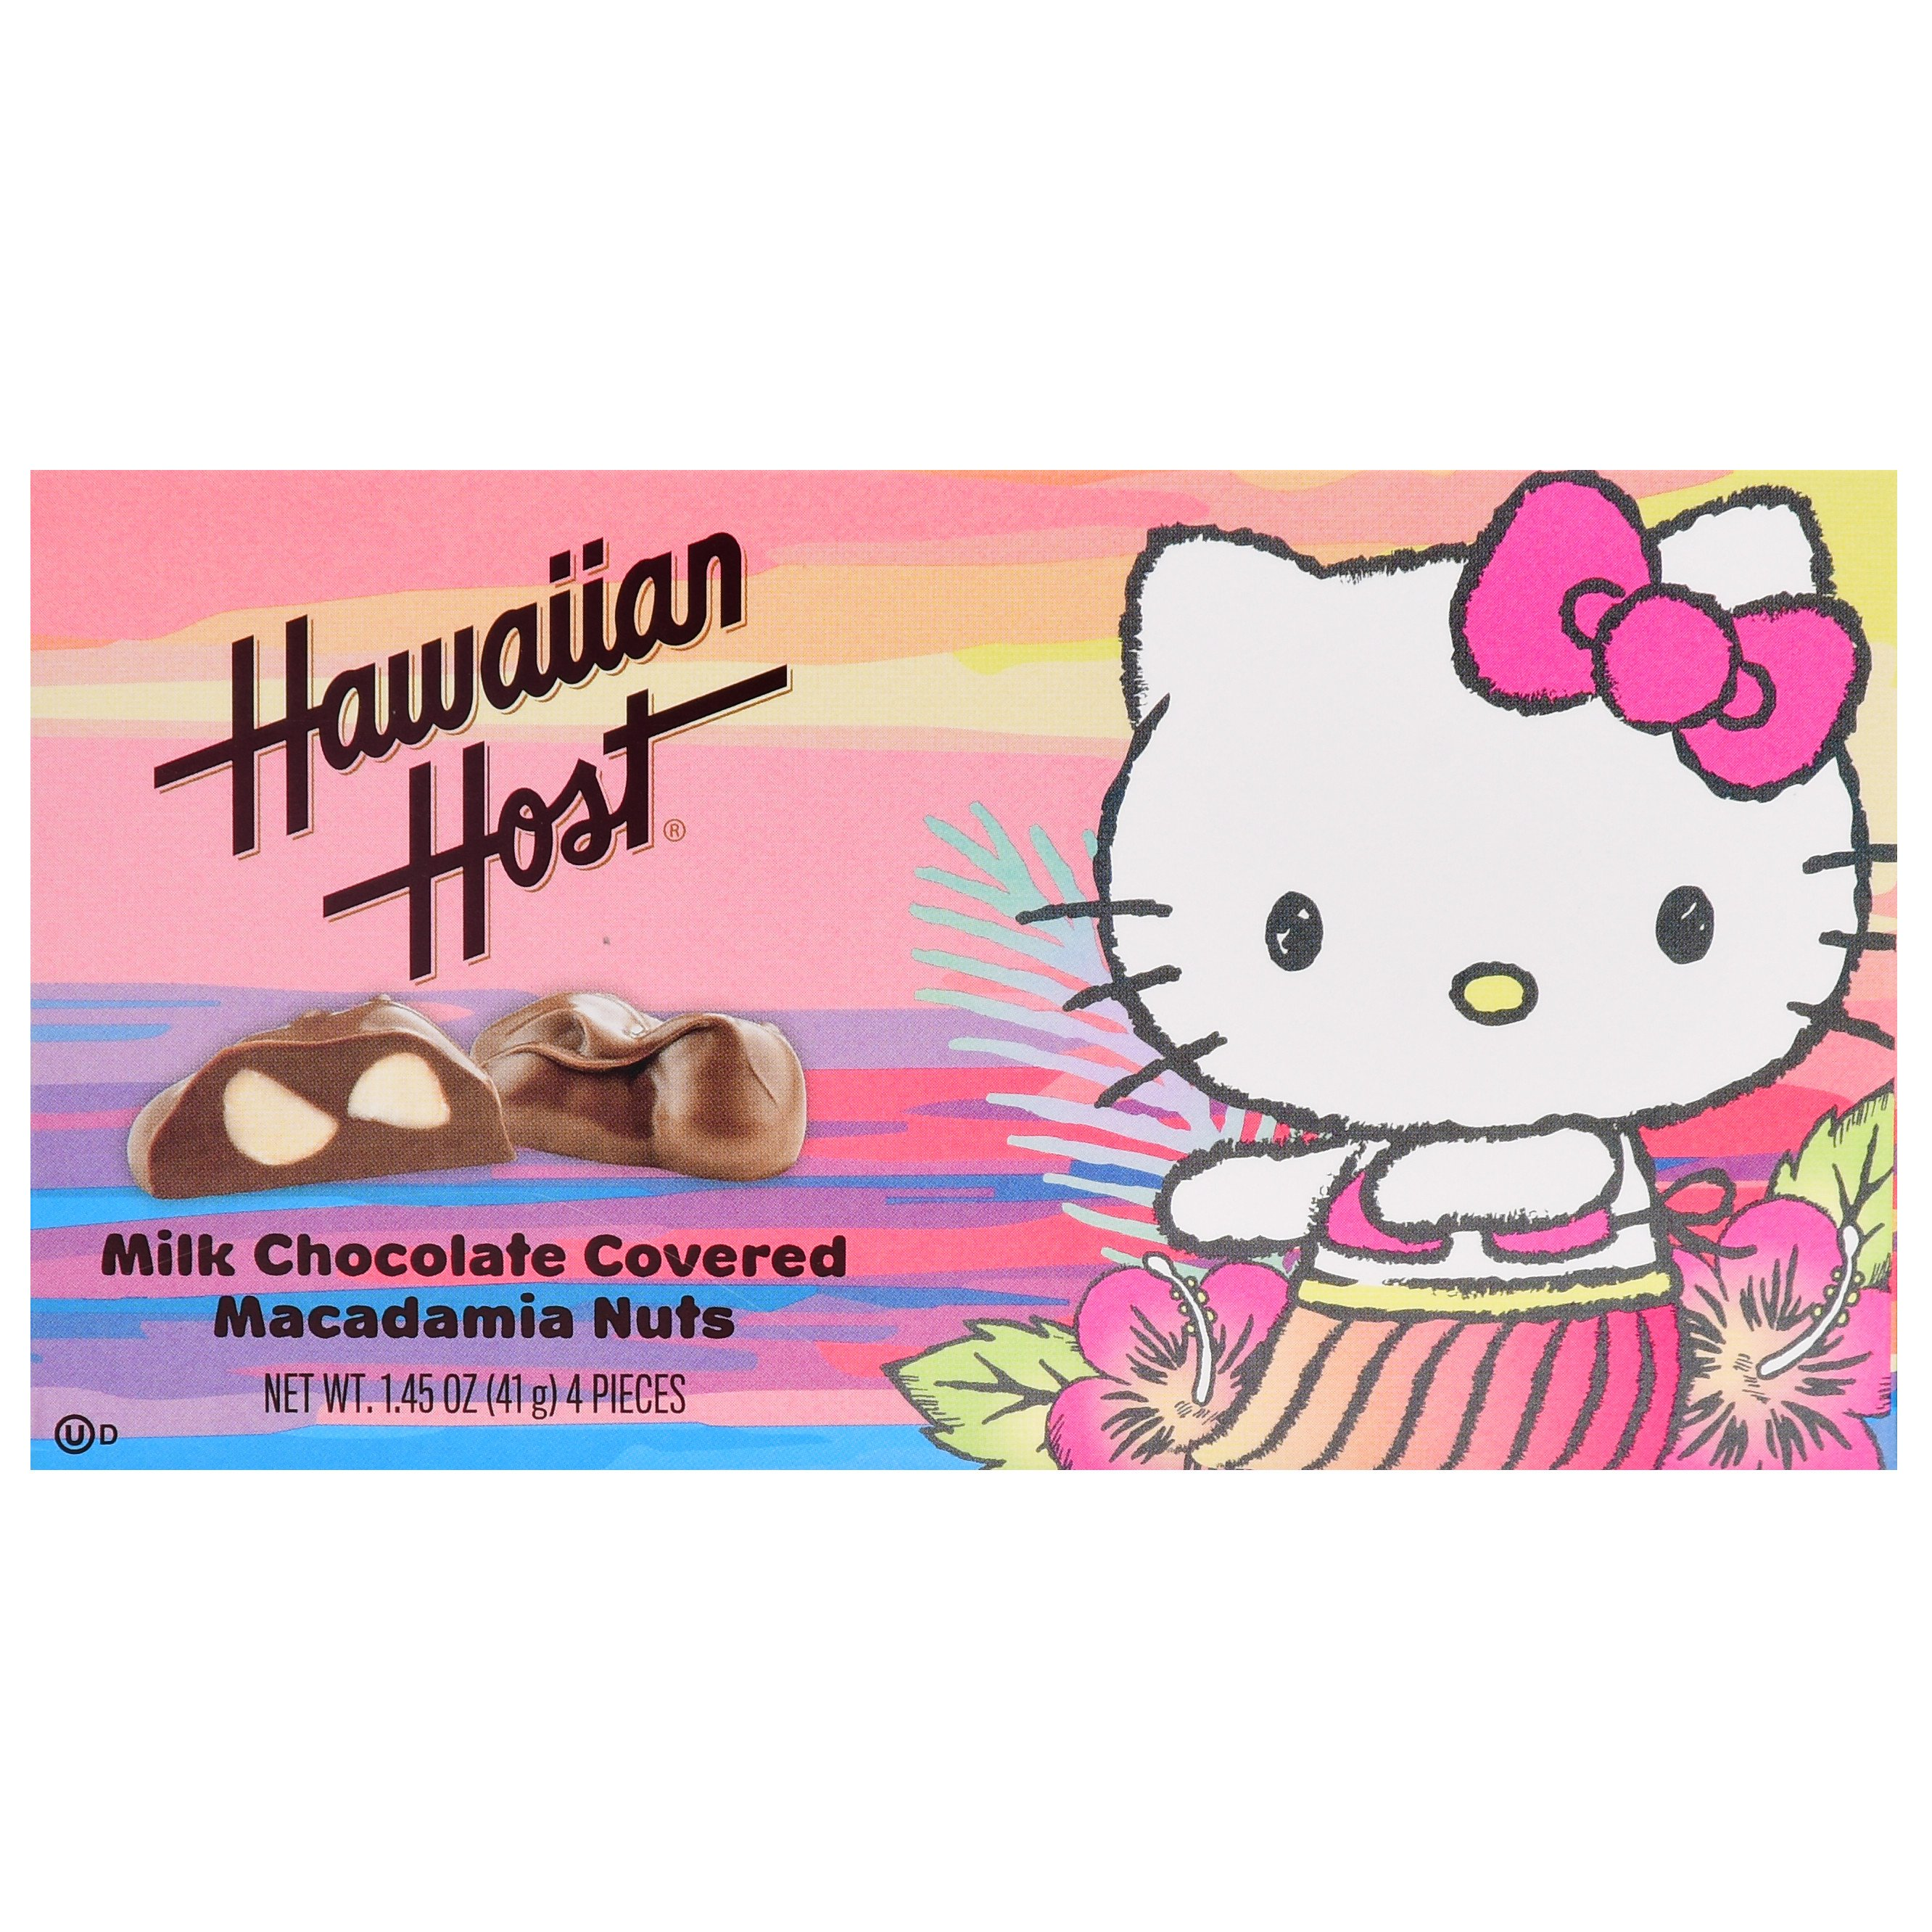 Hello Kitty Bedroom In A Box New Hawaiian Host Hello Kitty Milk Chocolate Covered Macadamia